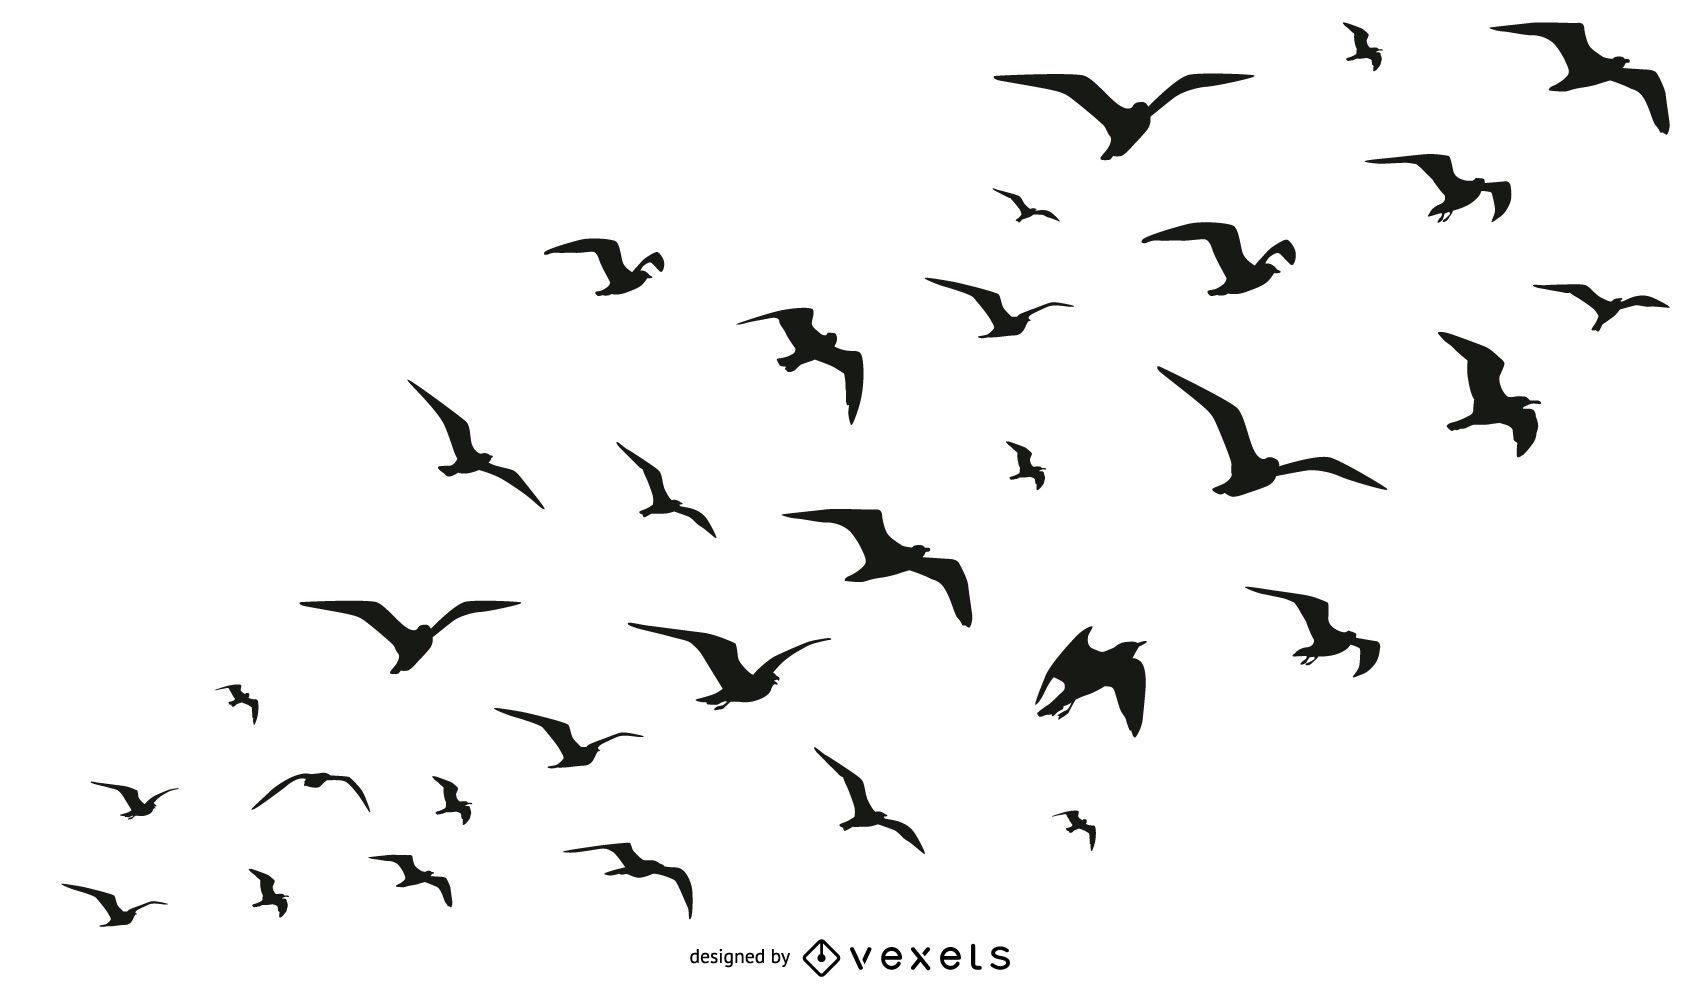 Birds flock silhouette collection - Vector download